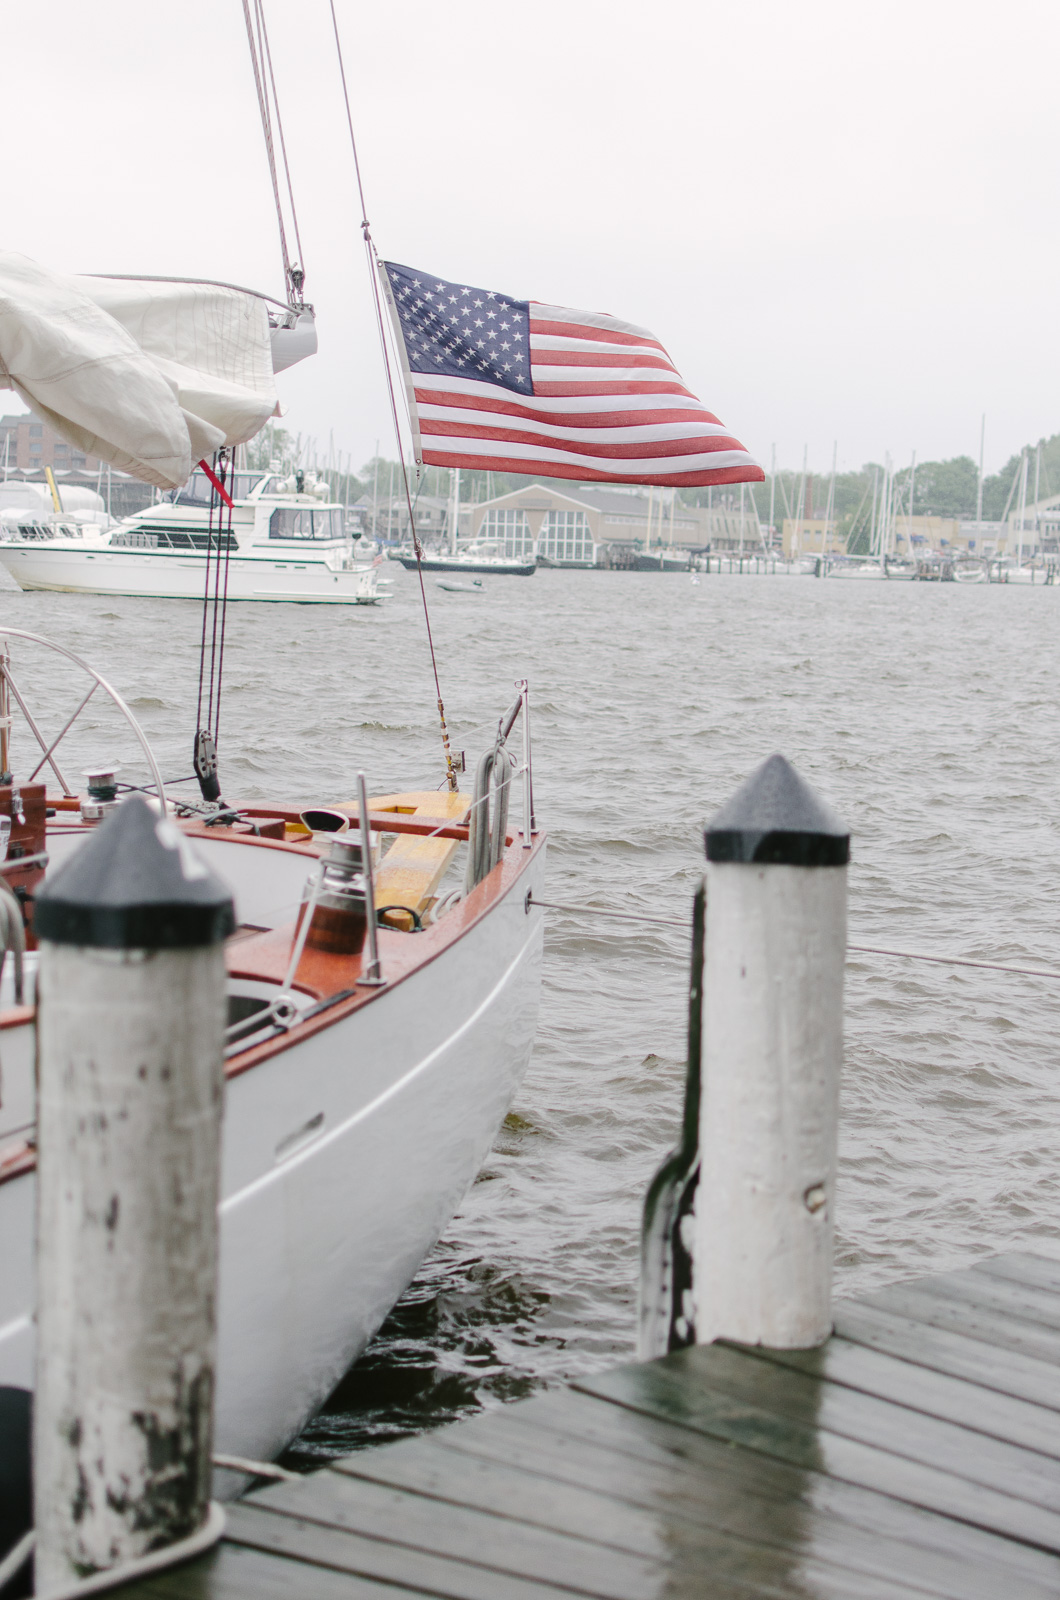 Schooner Woodwind Annapolis Maryland | Don't miss the full Annapolis Weekend Guide: where to eat, what to do, and where to stay! | bylaurenm.com